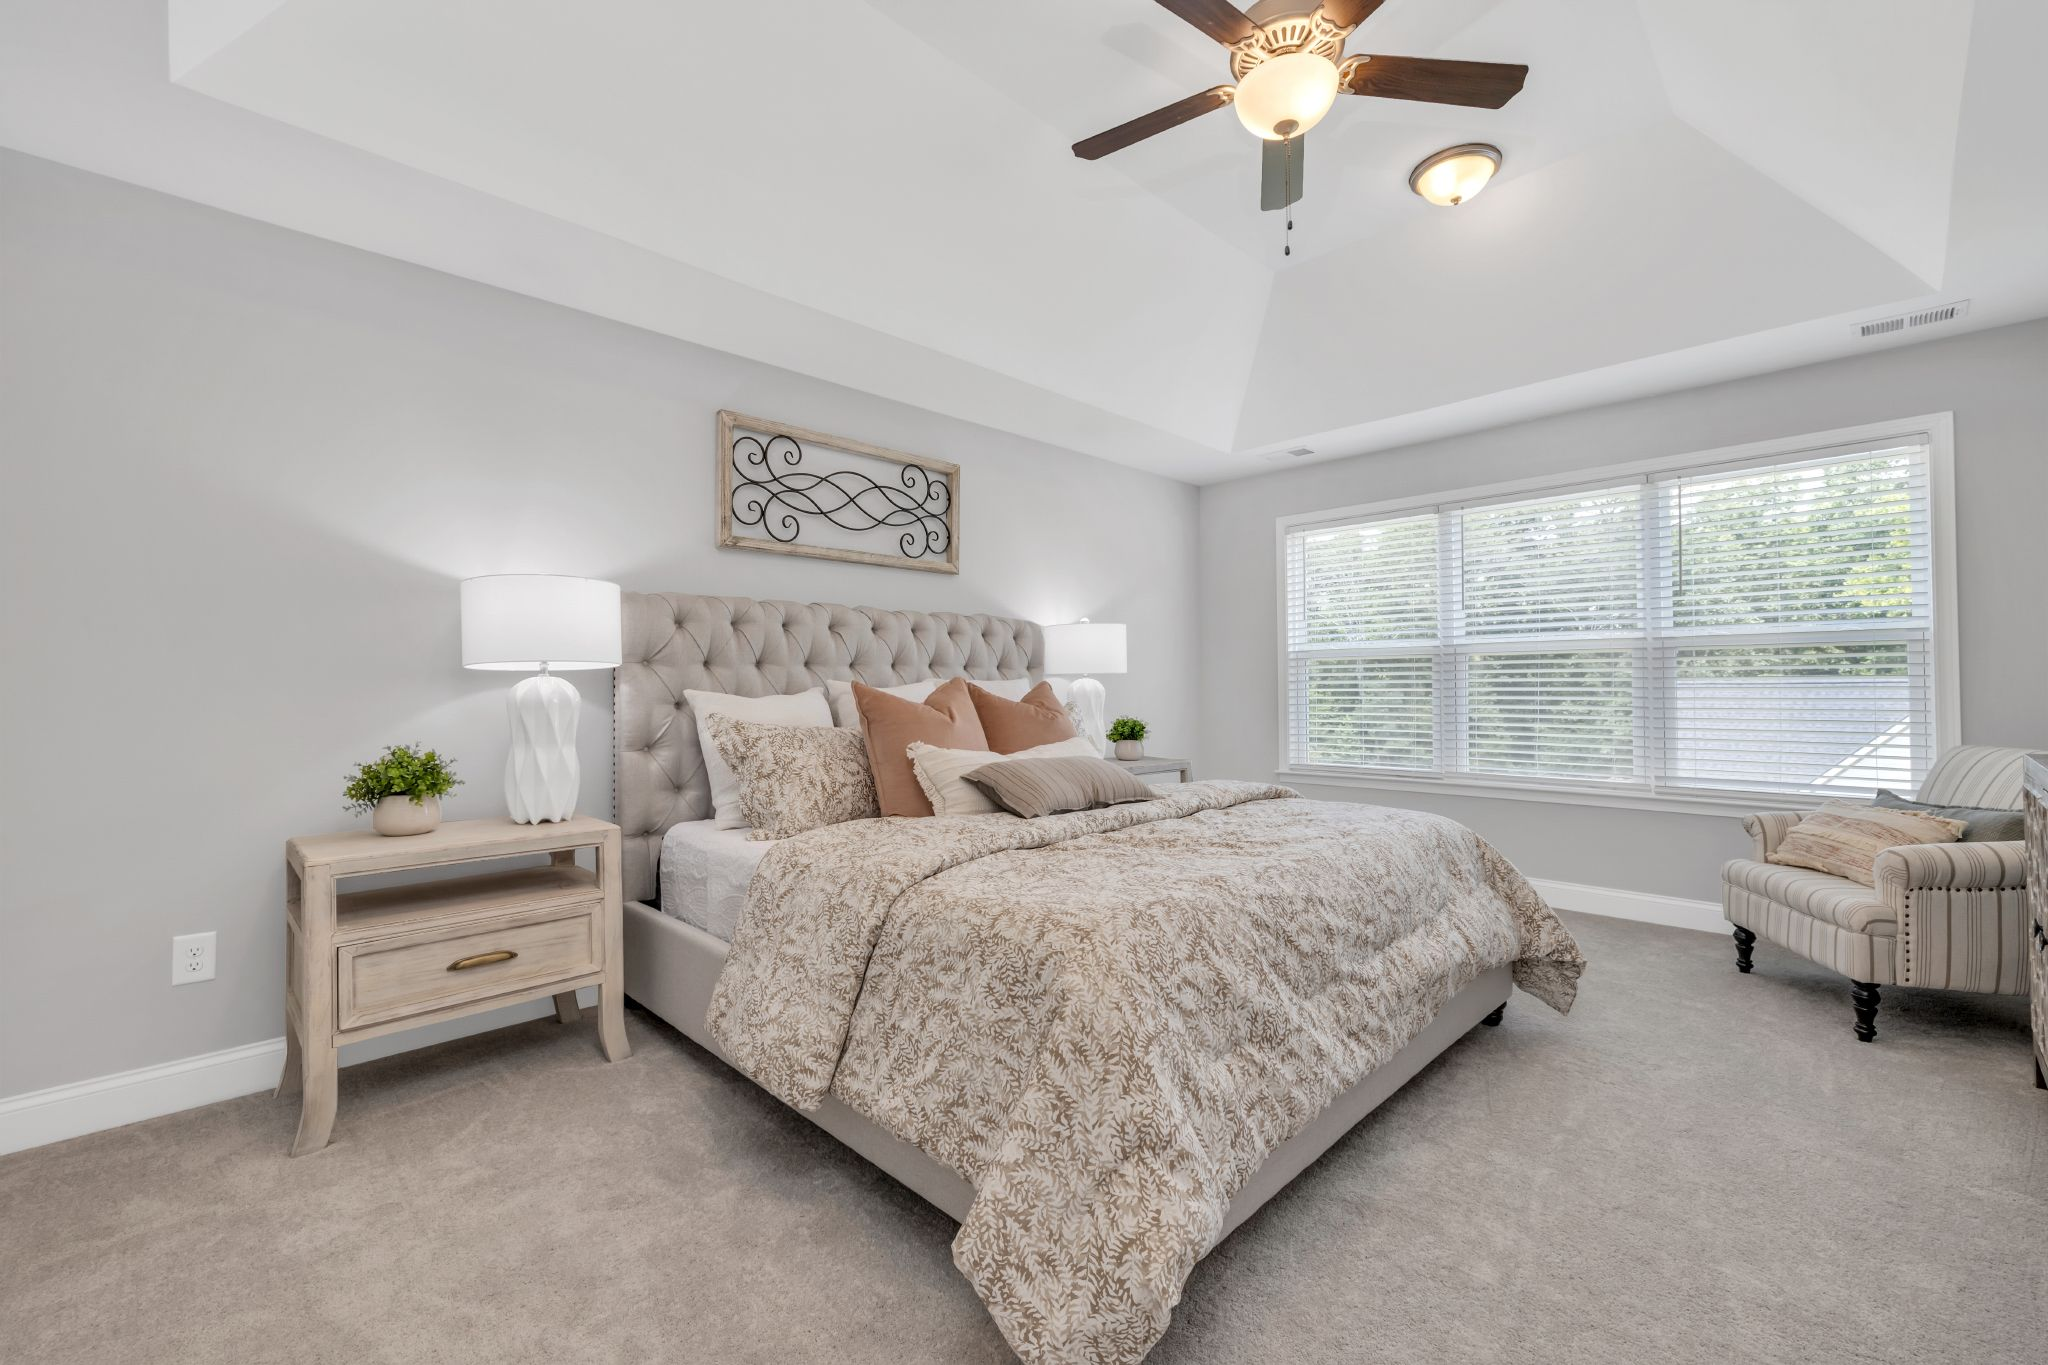 Bedroom featured in The Alexandria By Goodall Homes in Knoxville, TN